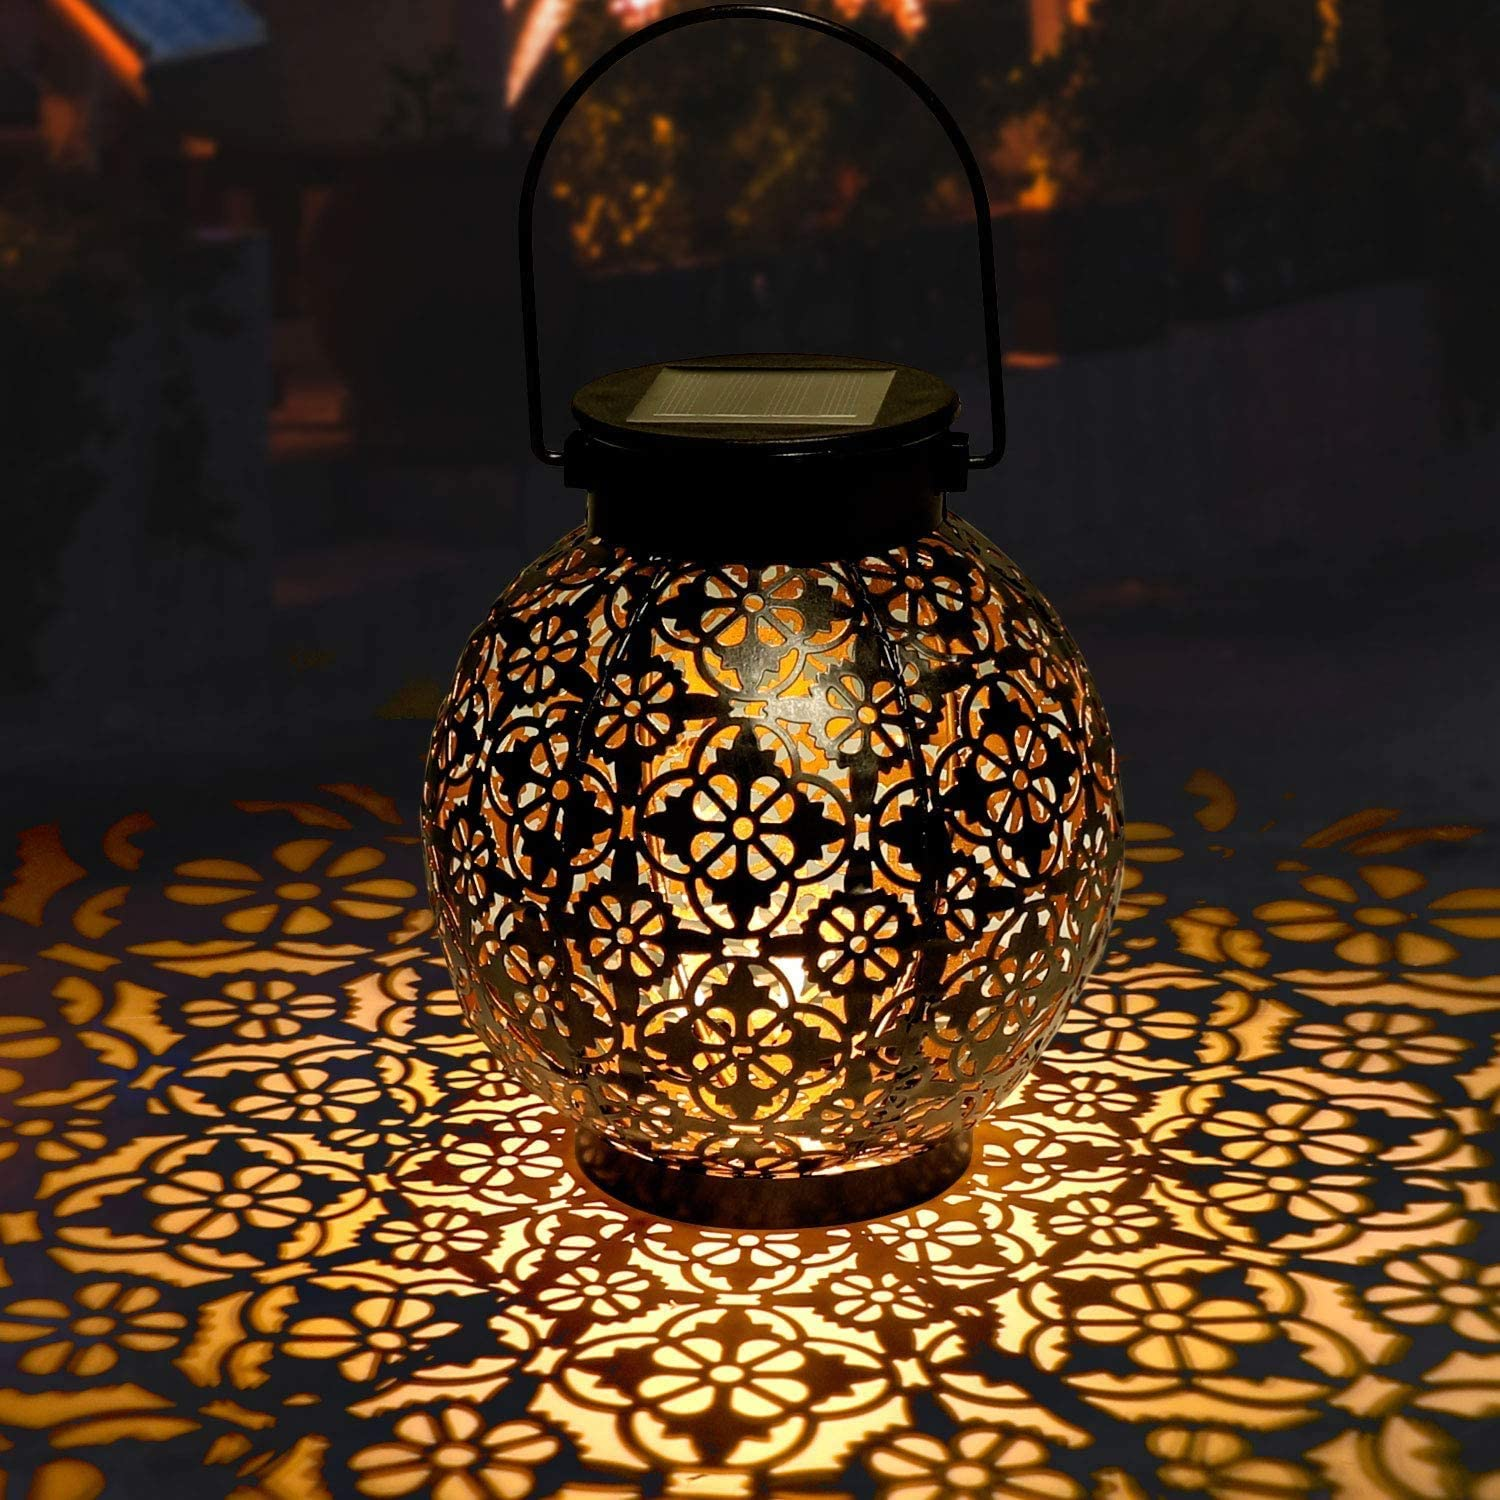 Golwof Solar Lanterns Outdoor Hanging, Hanging Solar Lights Decorative Retro Metal Waterproof Solar Lamp with Handle for Garden, Yard Porch and Tabletop